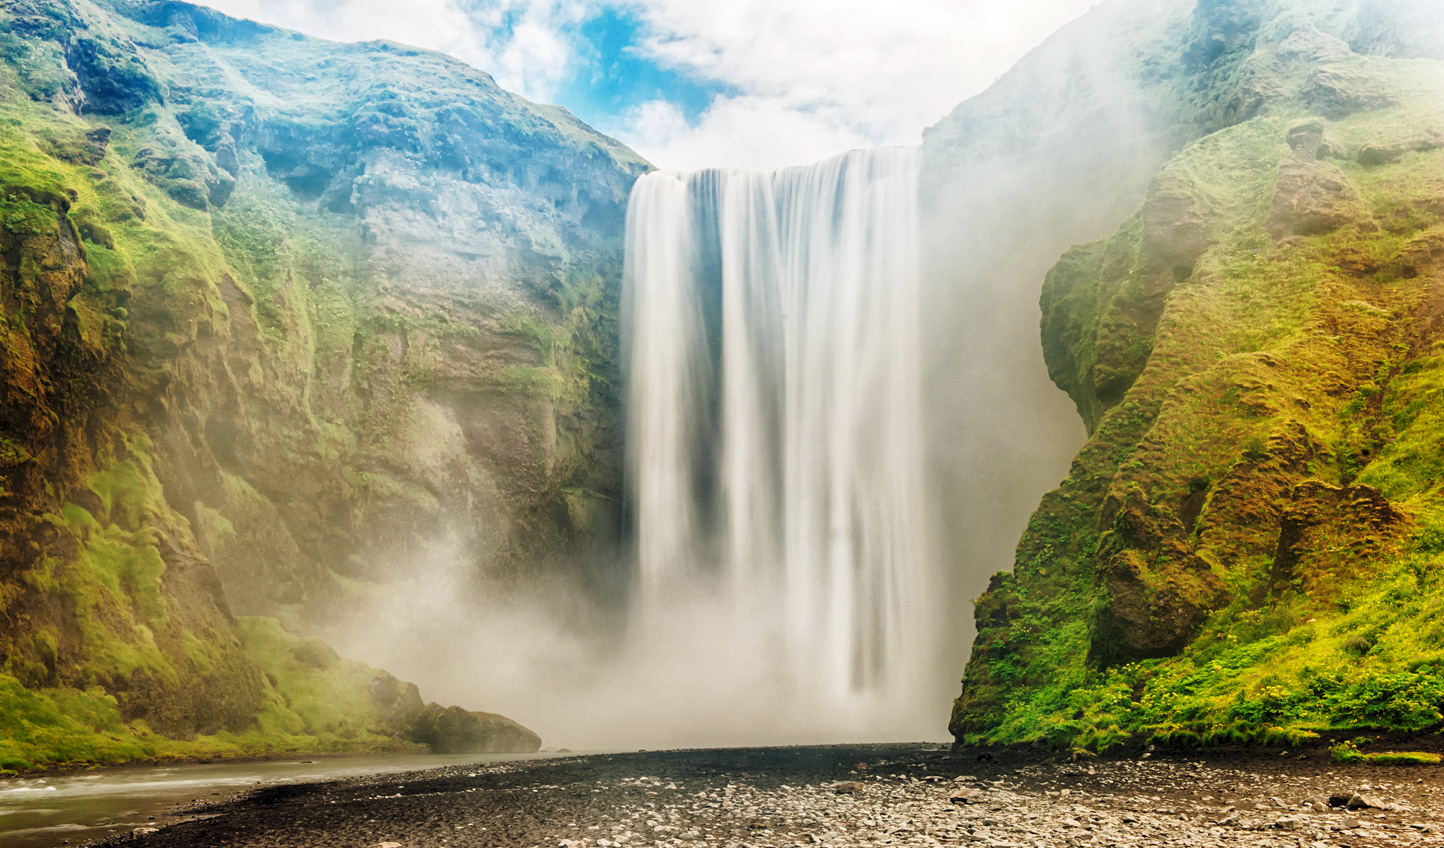 Step into the might of the Golden Circle with a visit to Skogafoss